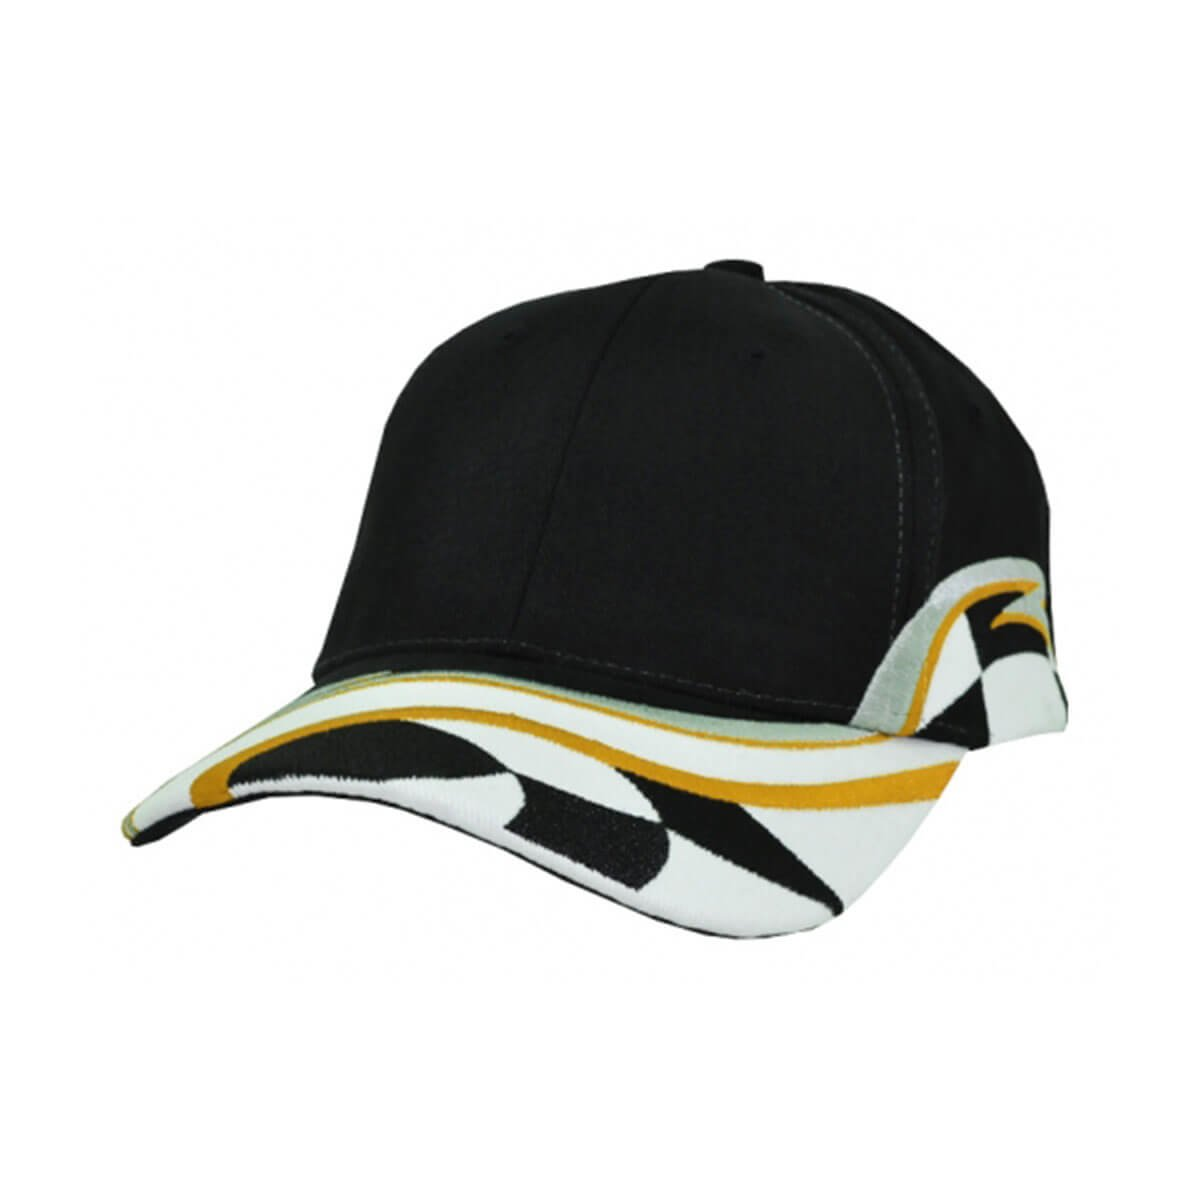 Raceway Cap-Black / Grey / Orange